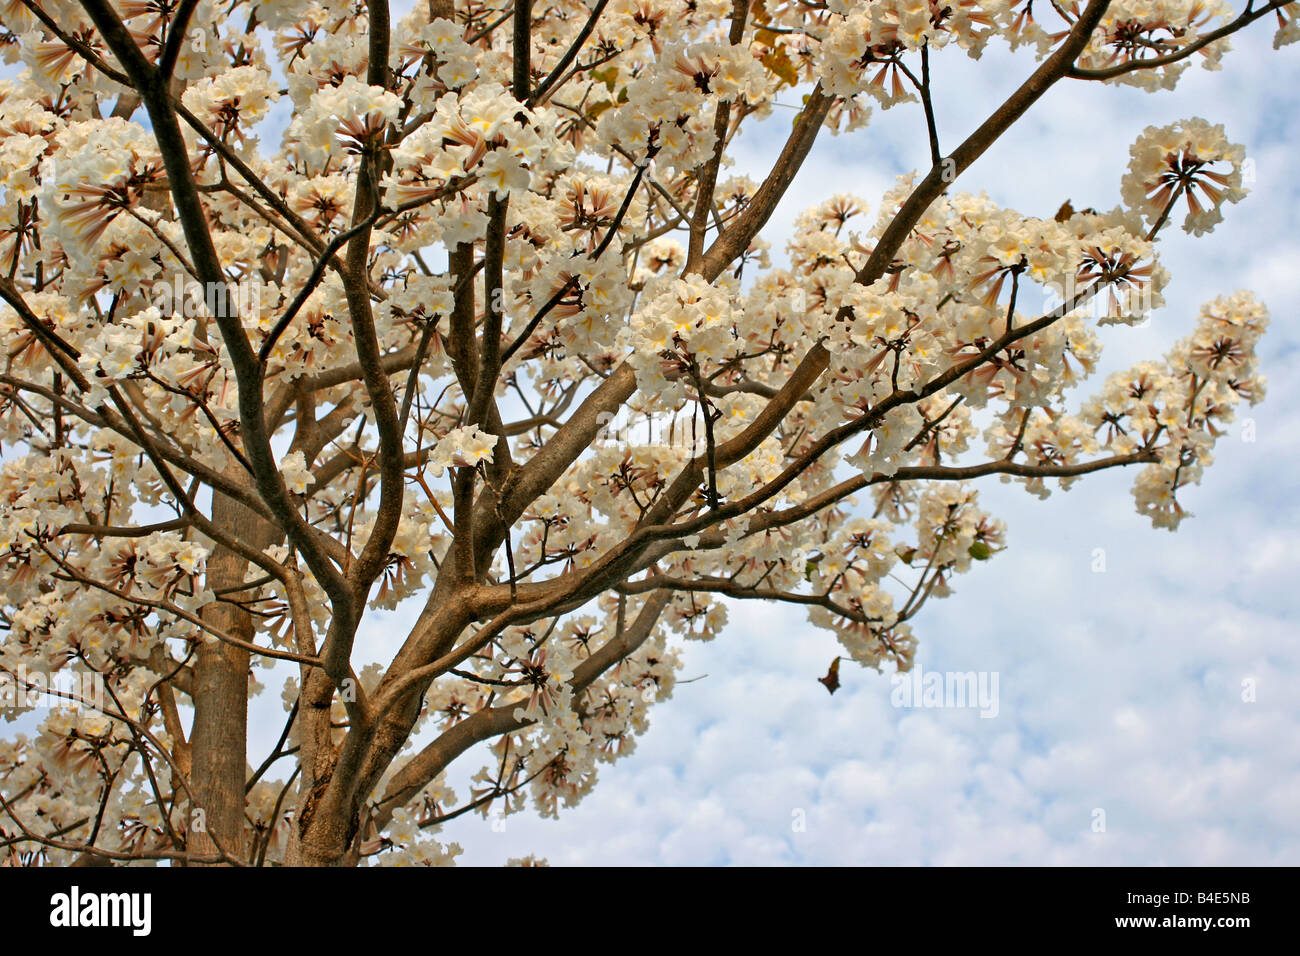 White trumpet tree stock photos white trumpet tree stock images white trumpet tree tabebuia pallida in bloom stock image mightylinksfo